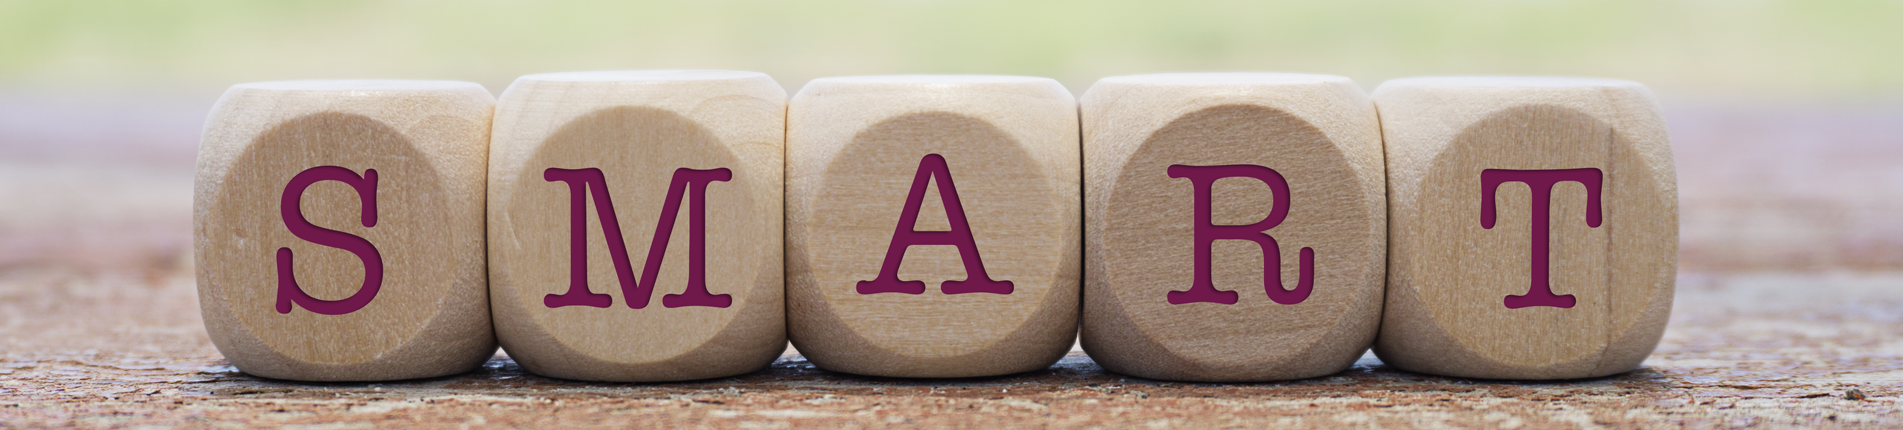 Toy wooden blocks with letters on them that spell SMART